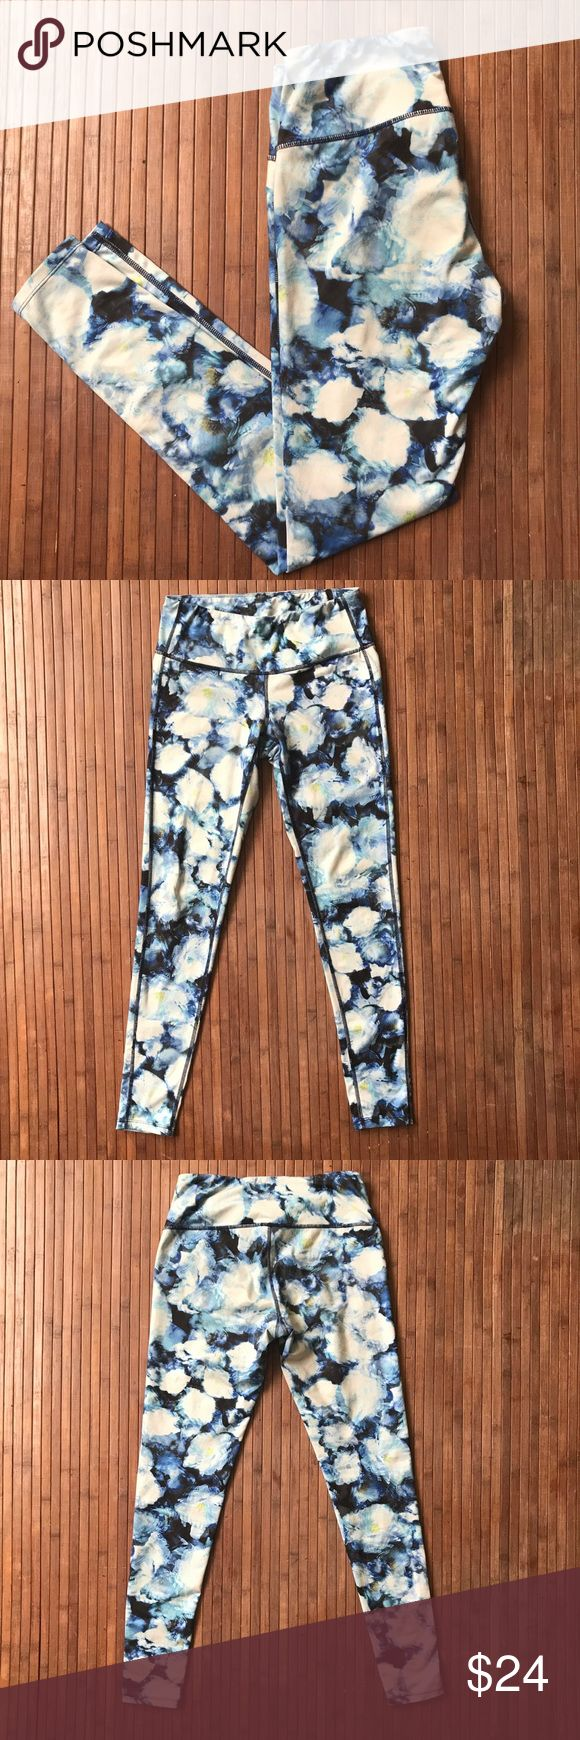 Athleta • Floral Workout Pant 🌙Athleta by Gap  🌙designed in Sonoma, California  🌙88% polyester 12% lycra spandex  🌙machine wash cold • gentle cycle • hang dry Athleta Pants Leggings